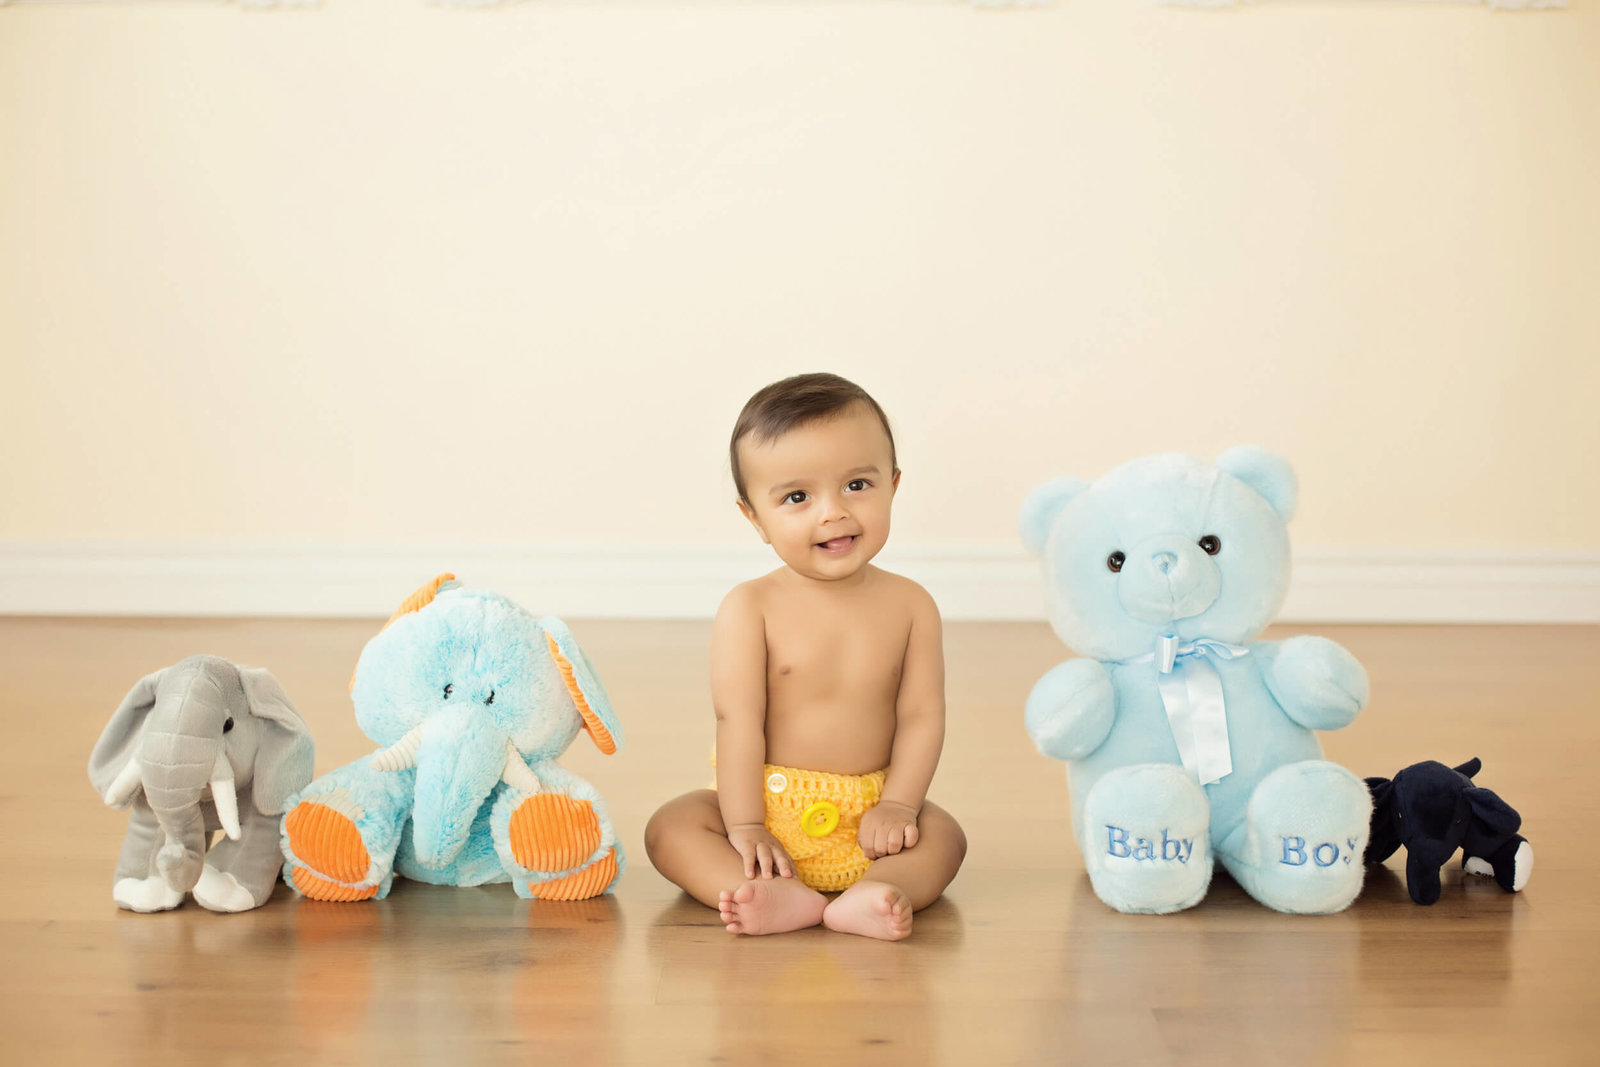 baby boy and stuffed animals photoshoot